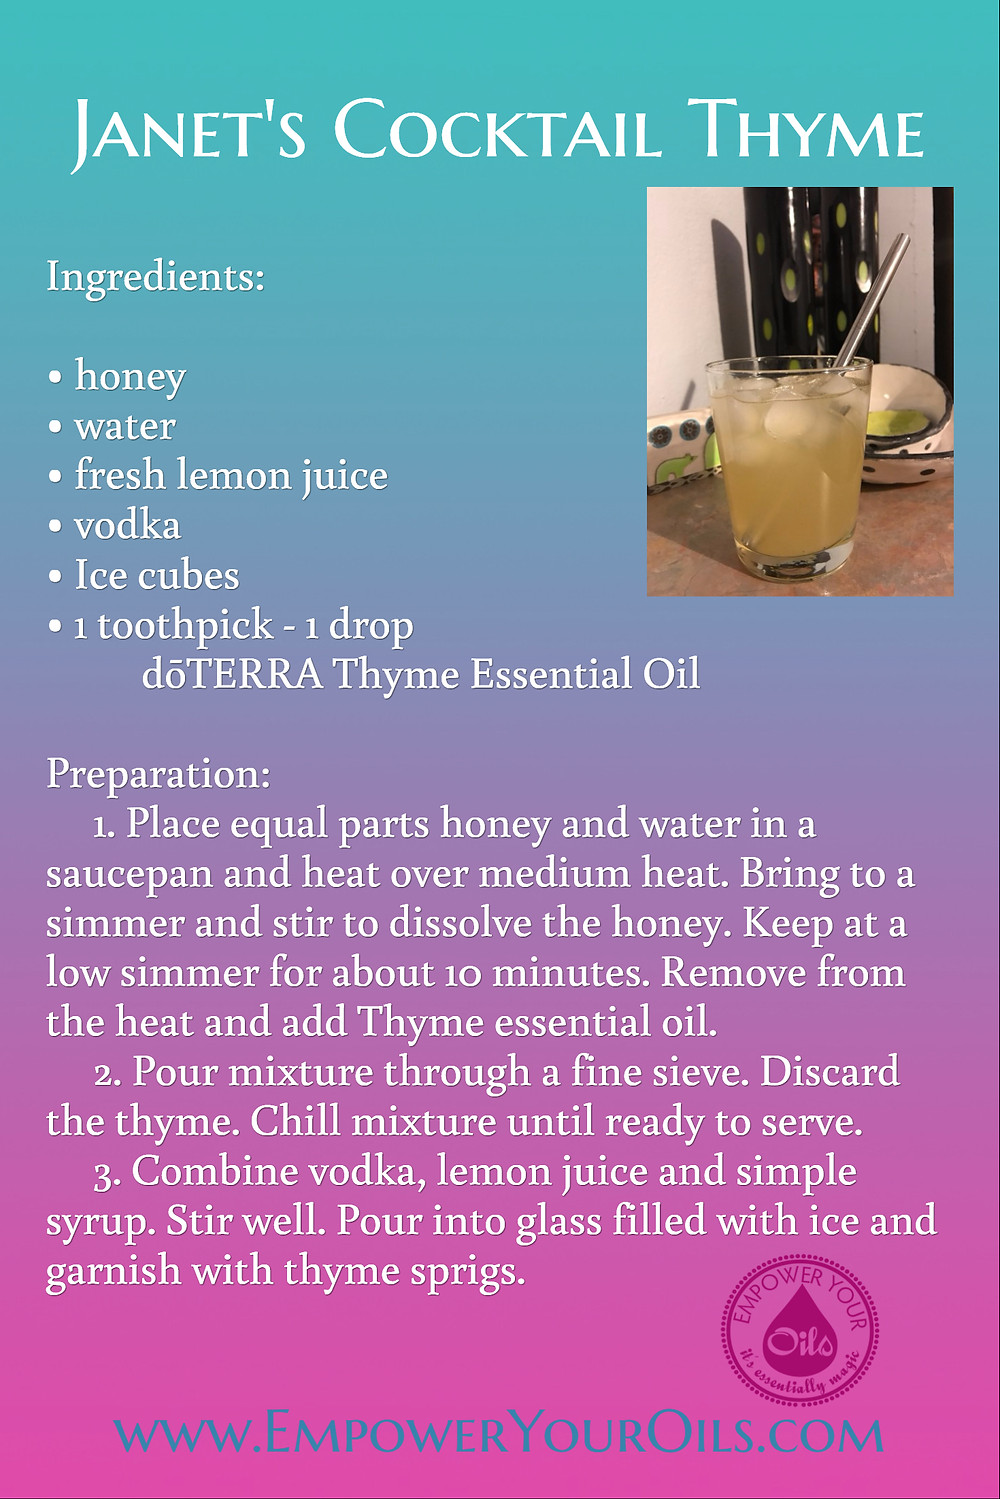 Janet's Cocktail Thyme